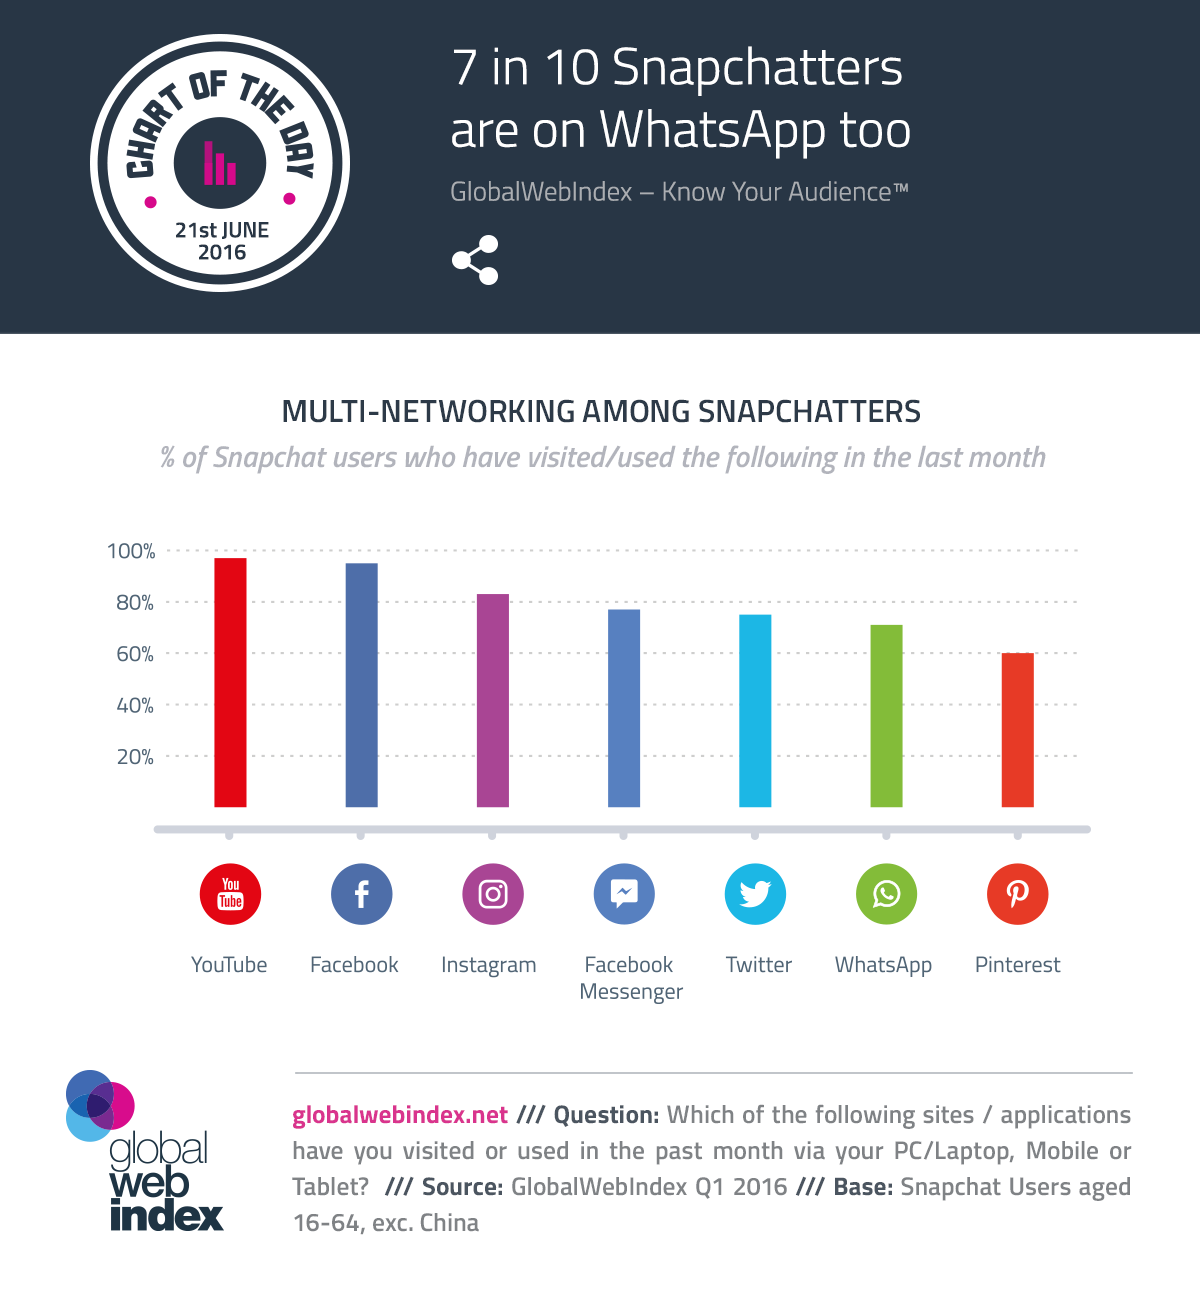 7 in 10 Snapchatters are on WhatsApp too